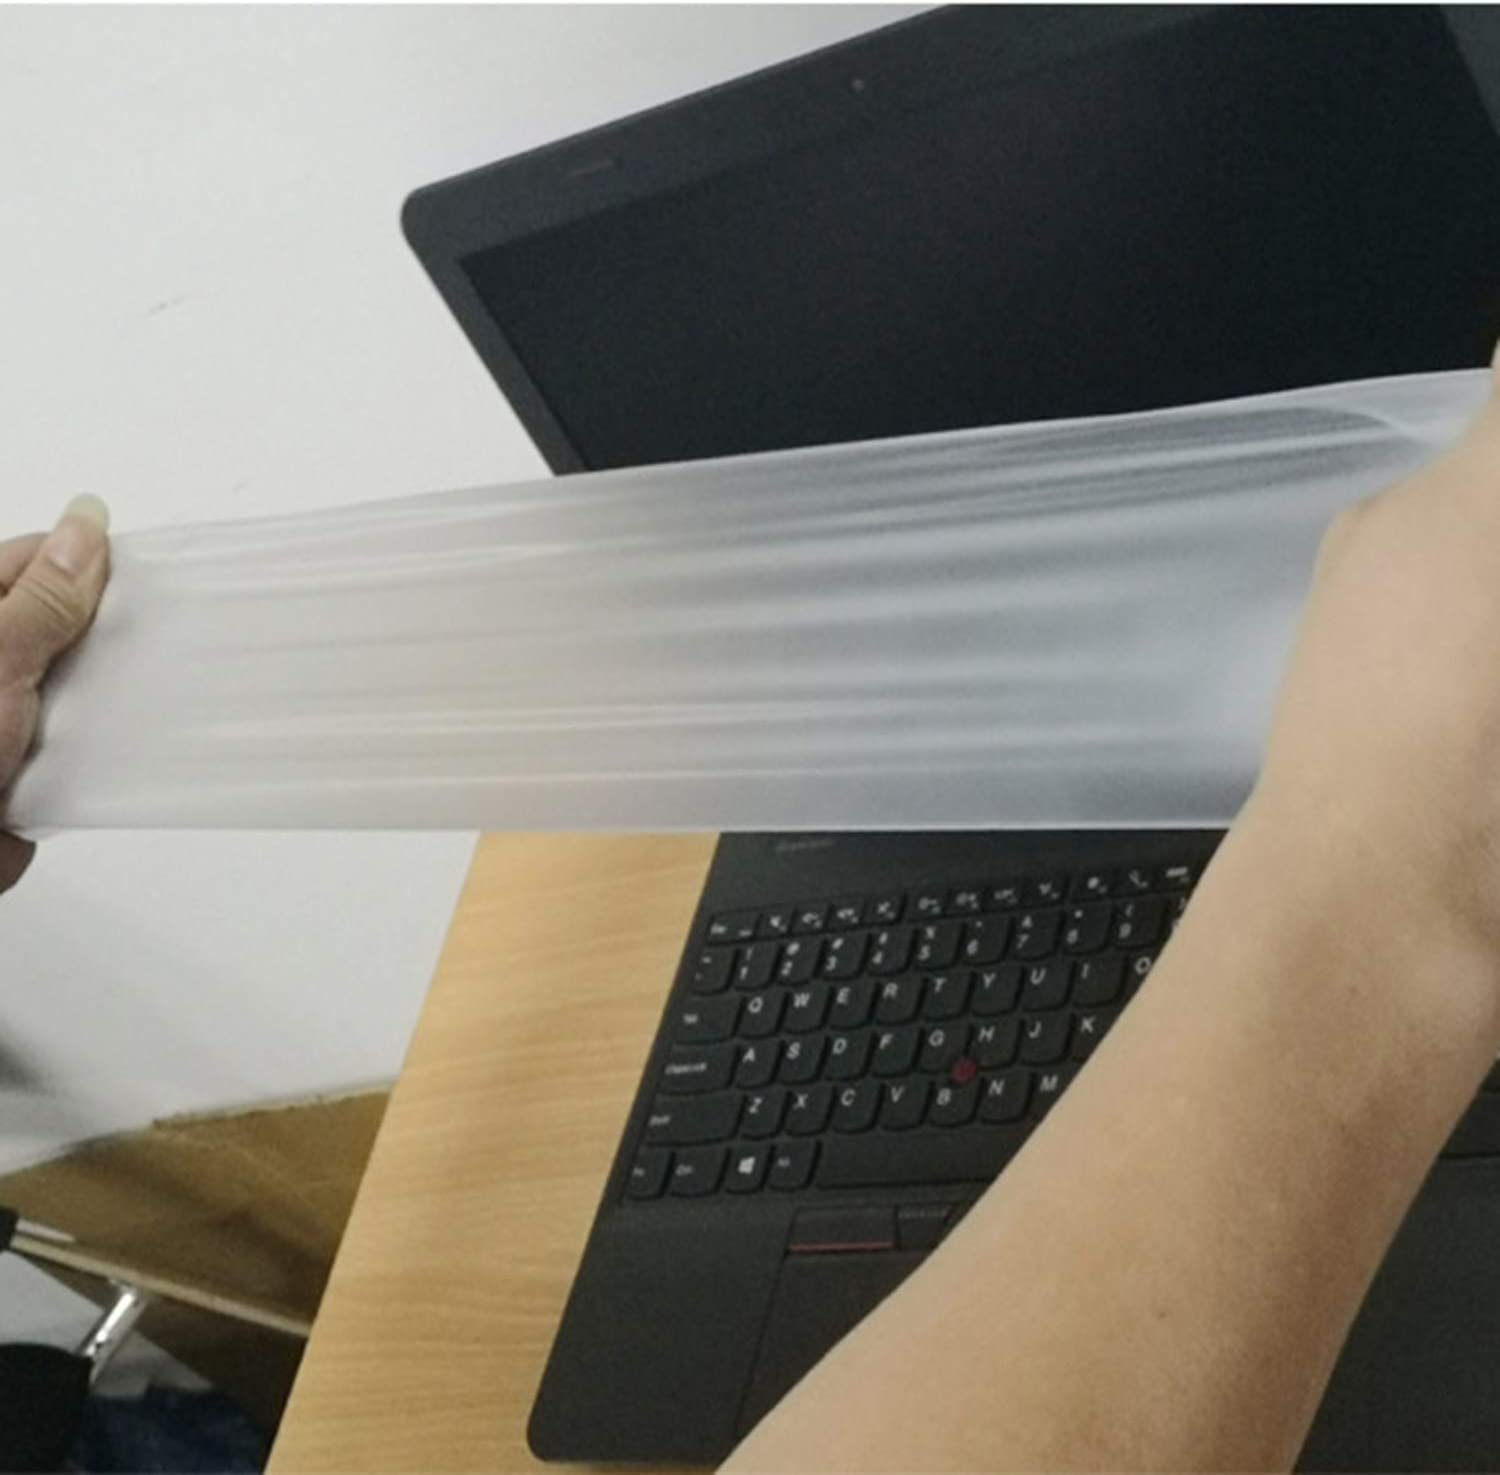 5pieces//lot Silicone Transparent Keyboard Covers for Computer Waterproof Anti dust Keyboard Covers Silicone for 15 inch keyboard-15 inch to 17 inch